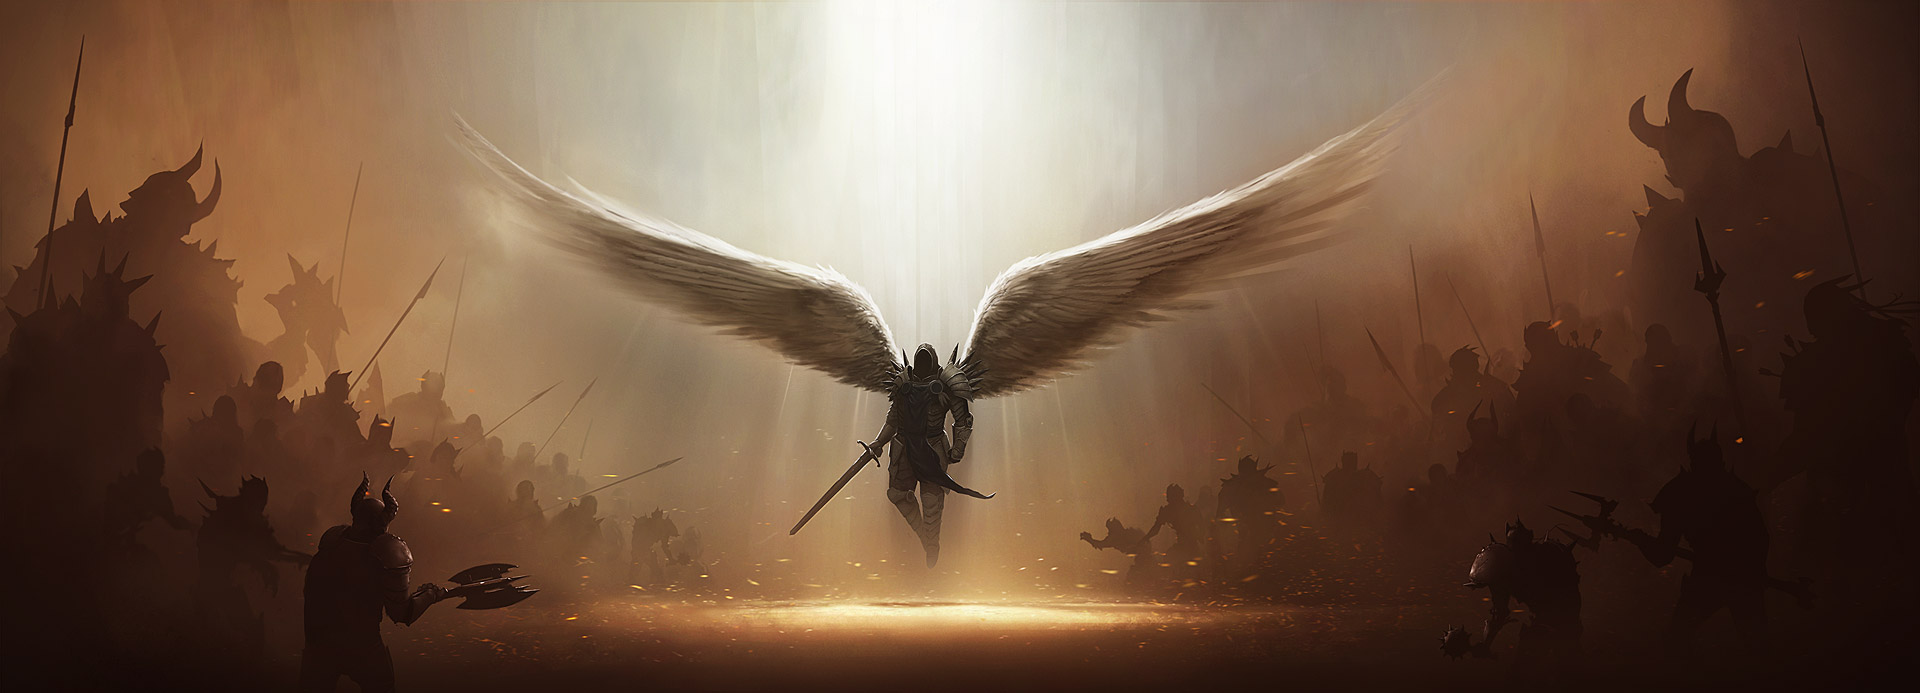 Diablo 3 Tyrael Fan Art WIP 3 by tobylewin